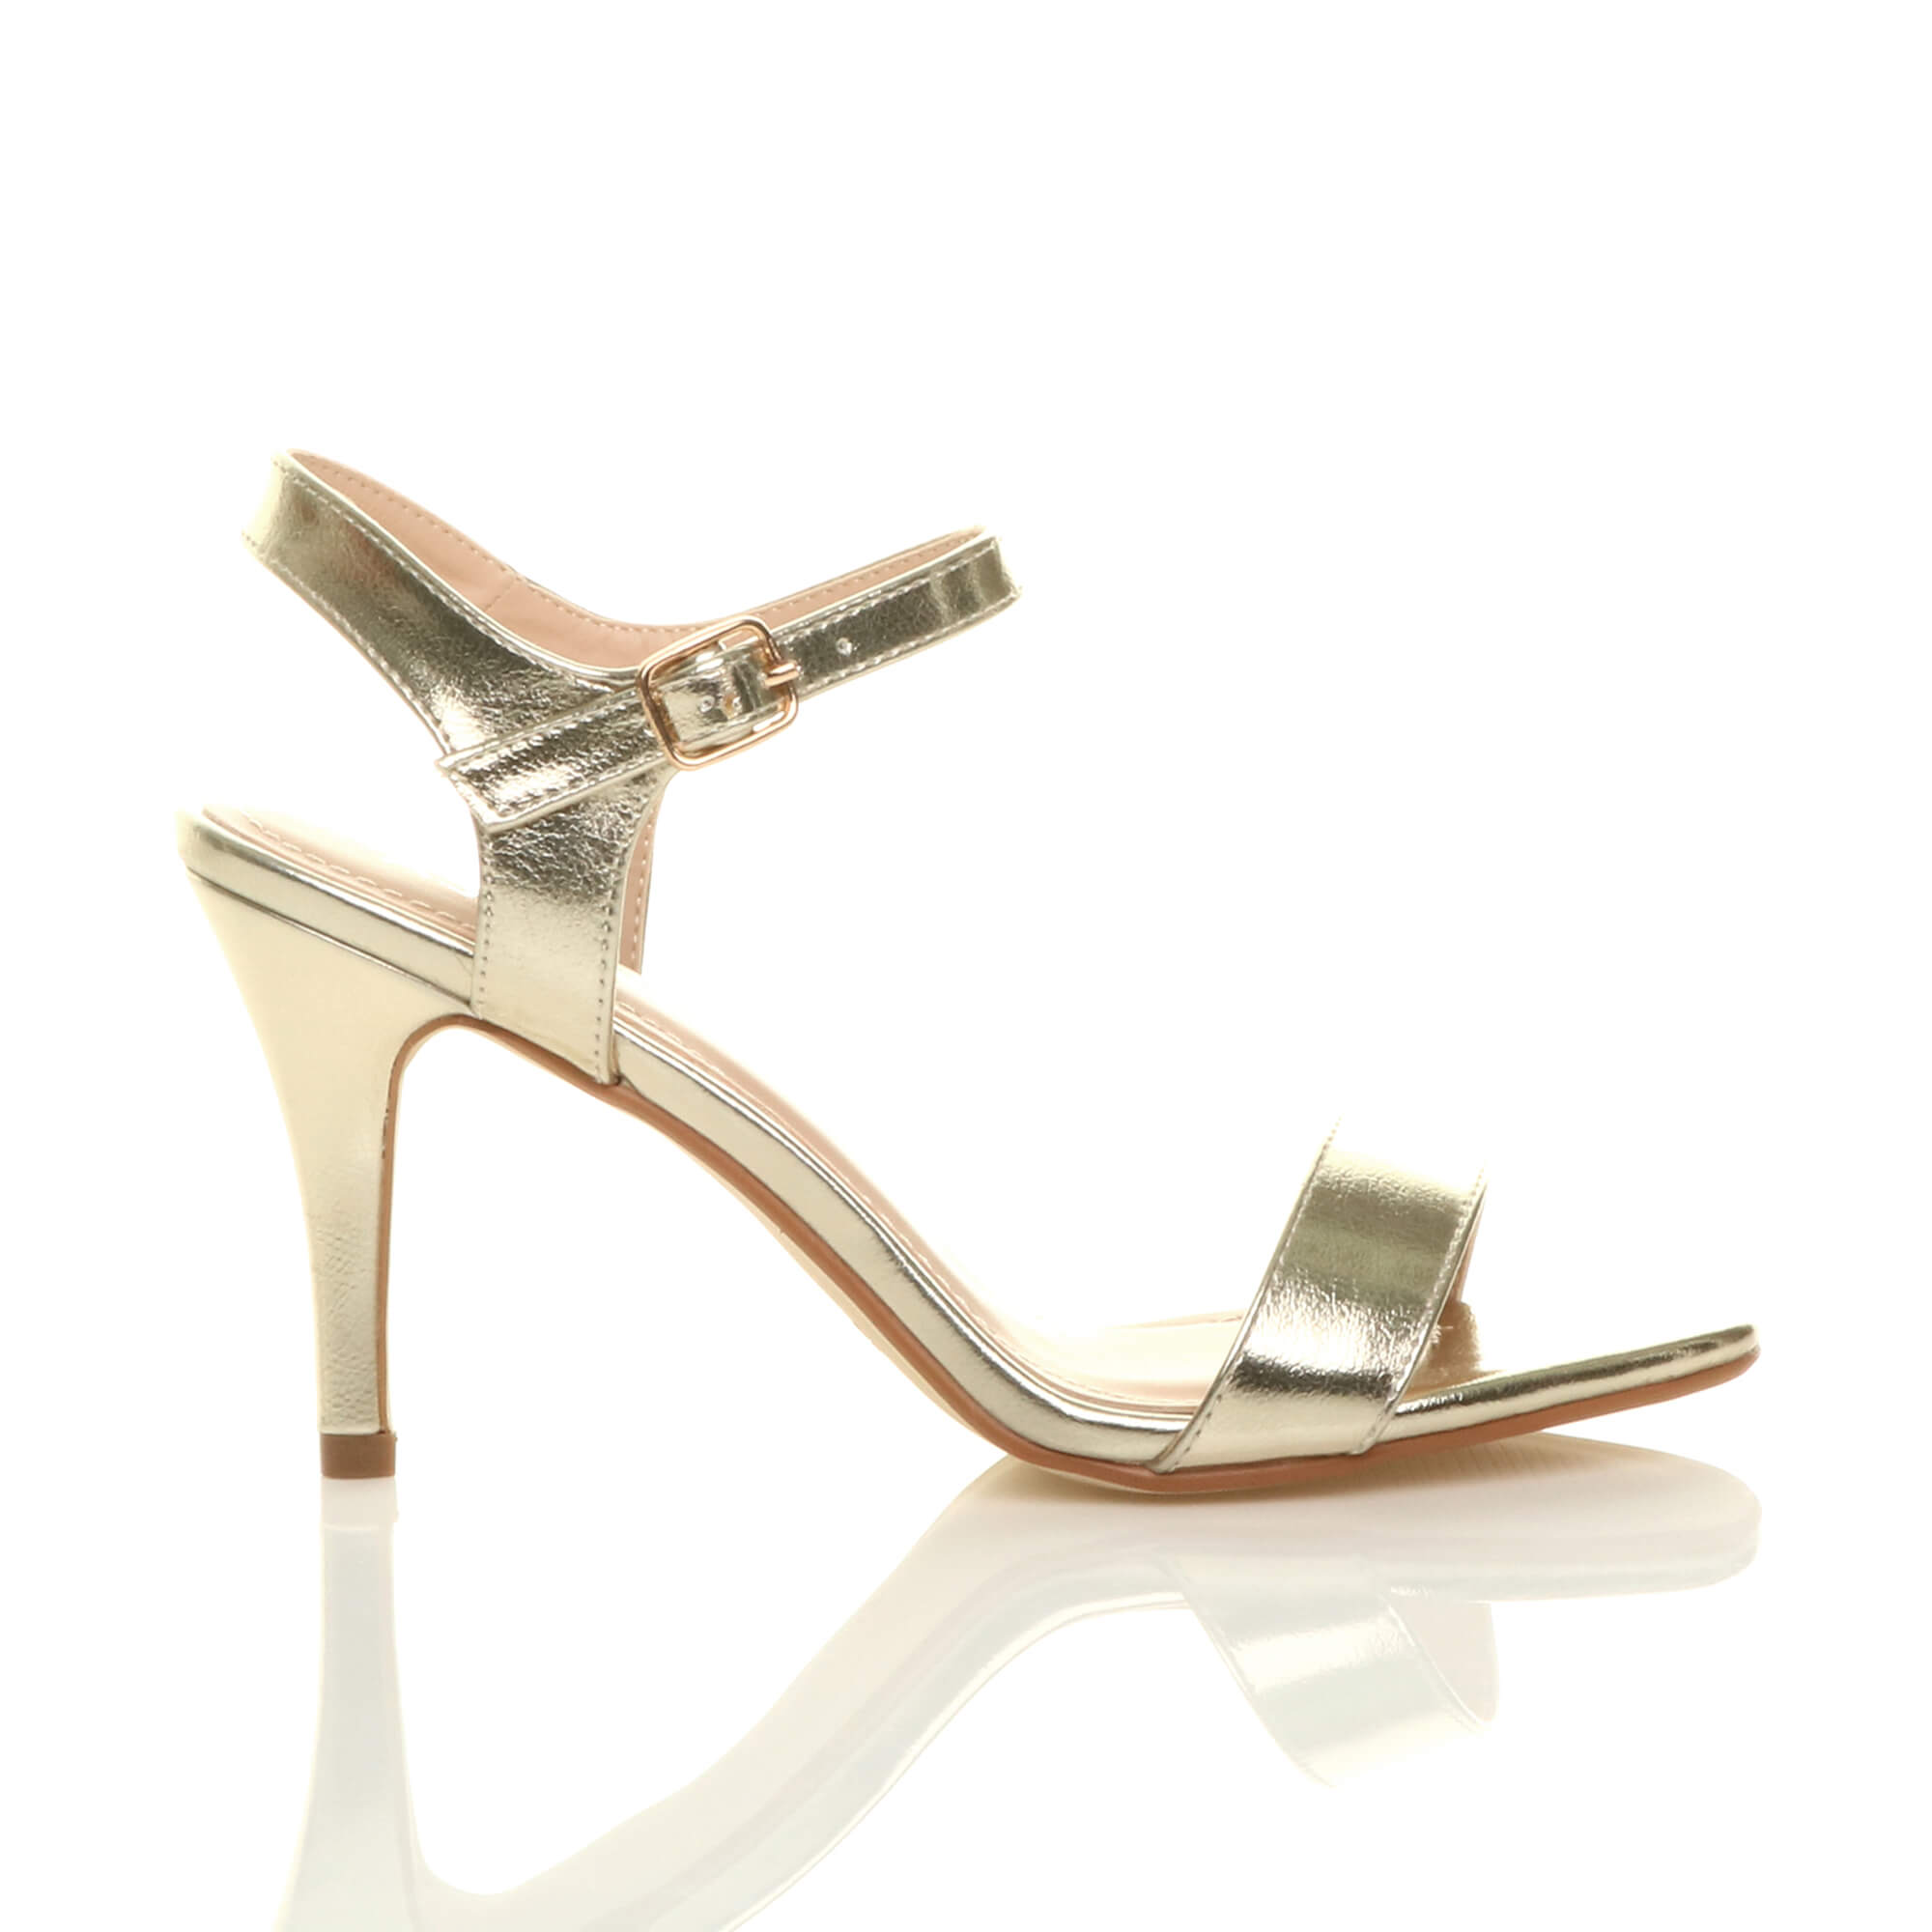 WOMENS-LADIES-HIGH-HEEL-BUCKLE-STRAPPY-BASIC-BARELY-THERE-SANDALS-SHOES-SIZE thumbnail 45